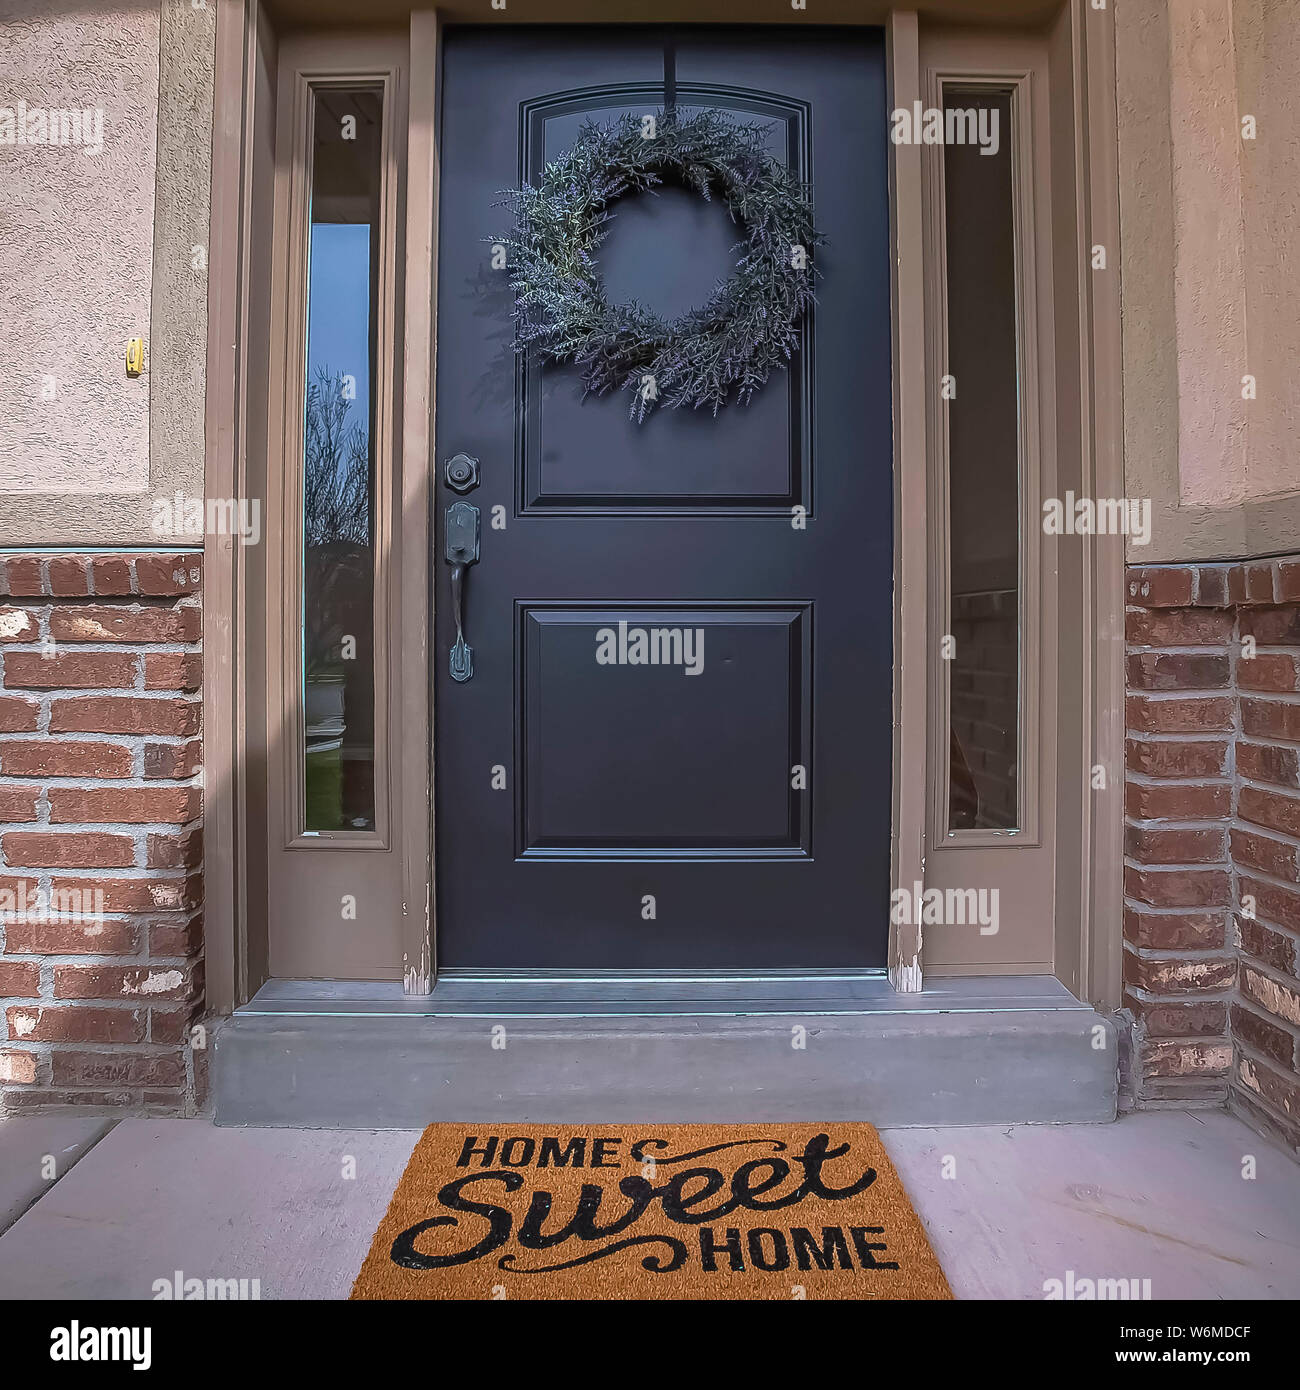 Square Wreath And Doormat On The Front Door With Sidelights And Transom Window Stock Photo Alamy